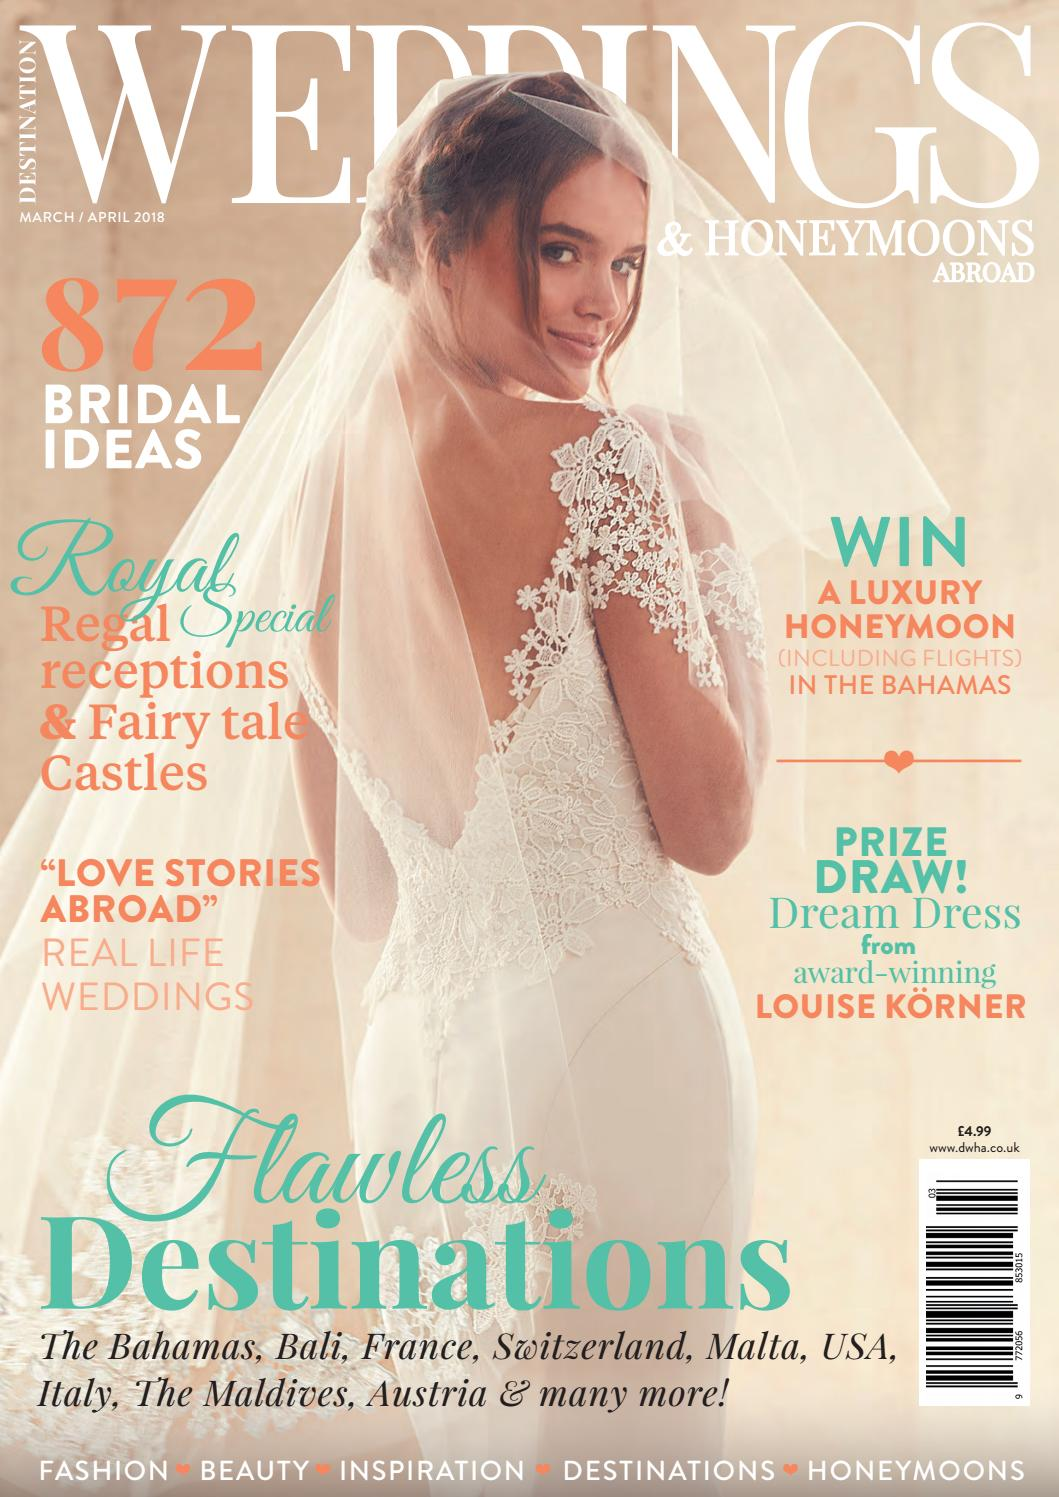 March / April 2018 by Destination Weddings and Honeymoons Abroad - issuu